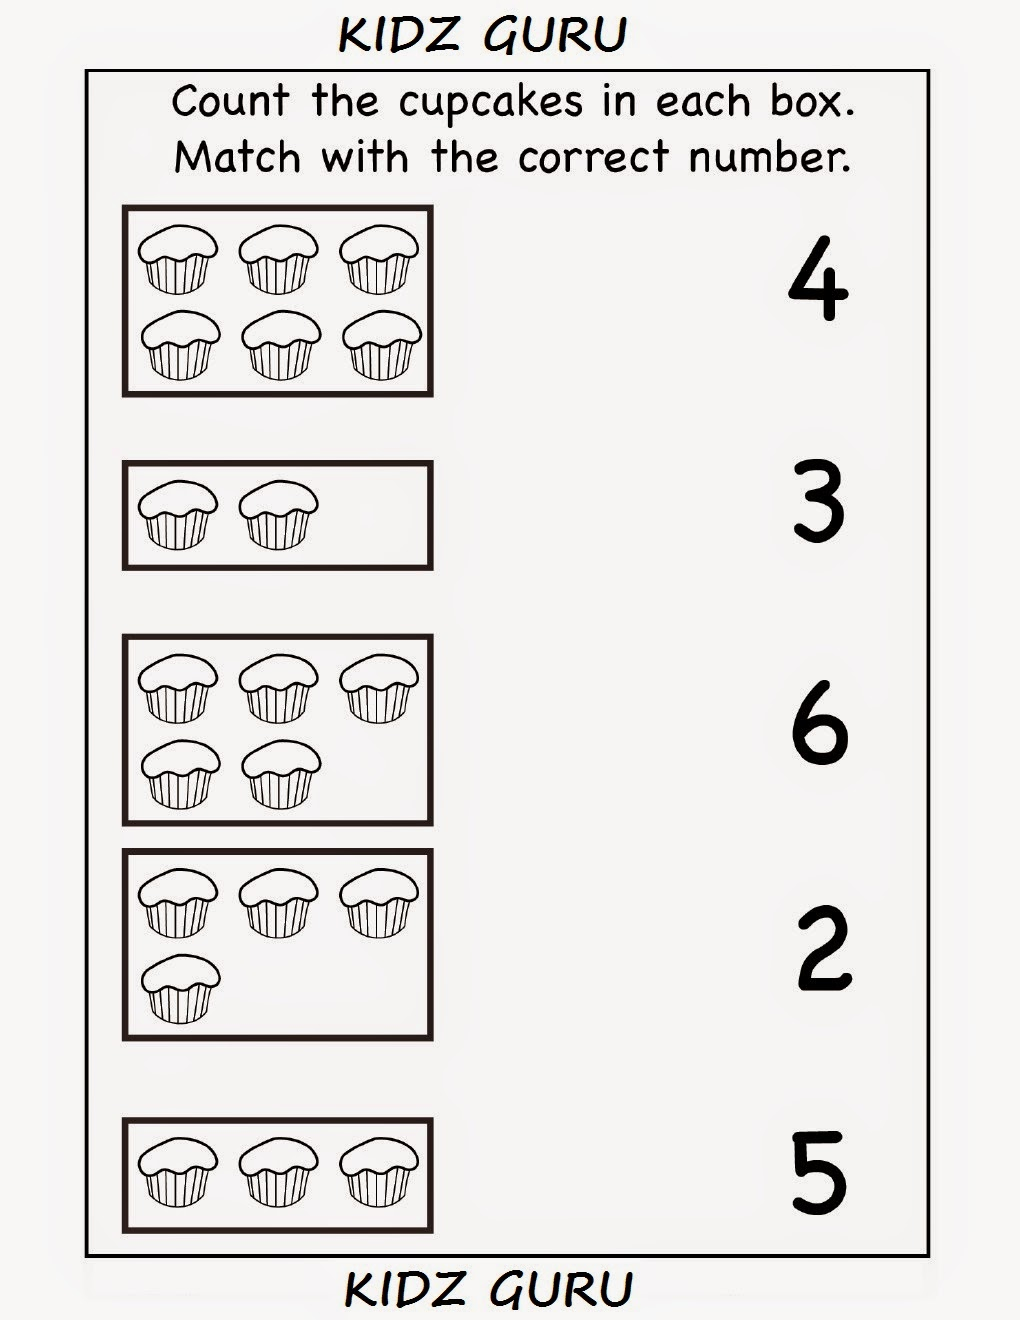 Worksheets Kindergarten Matching Worksheets kindergarten worksheets printable count and match match